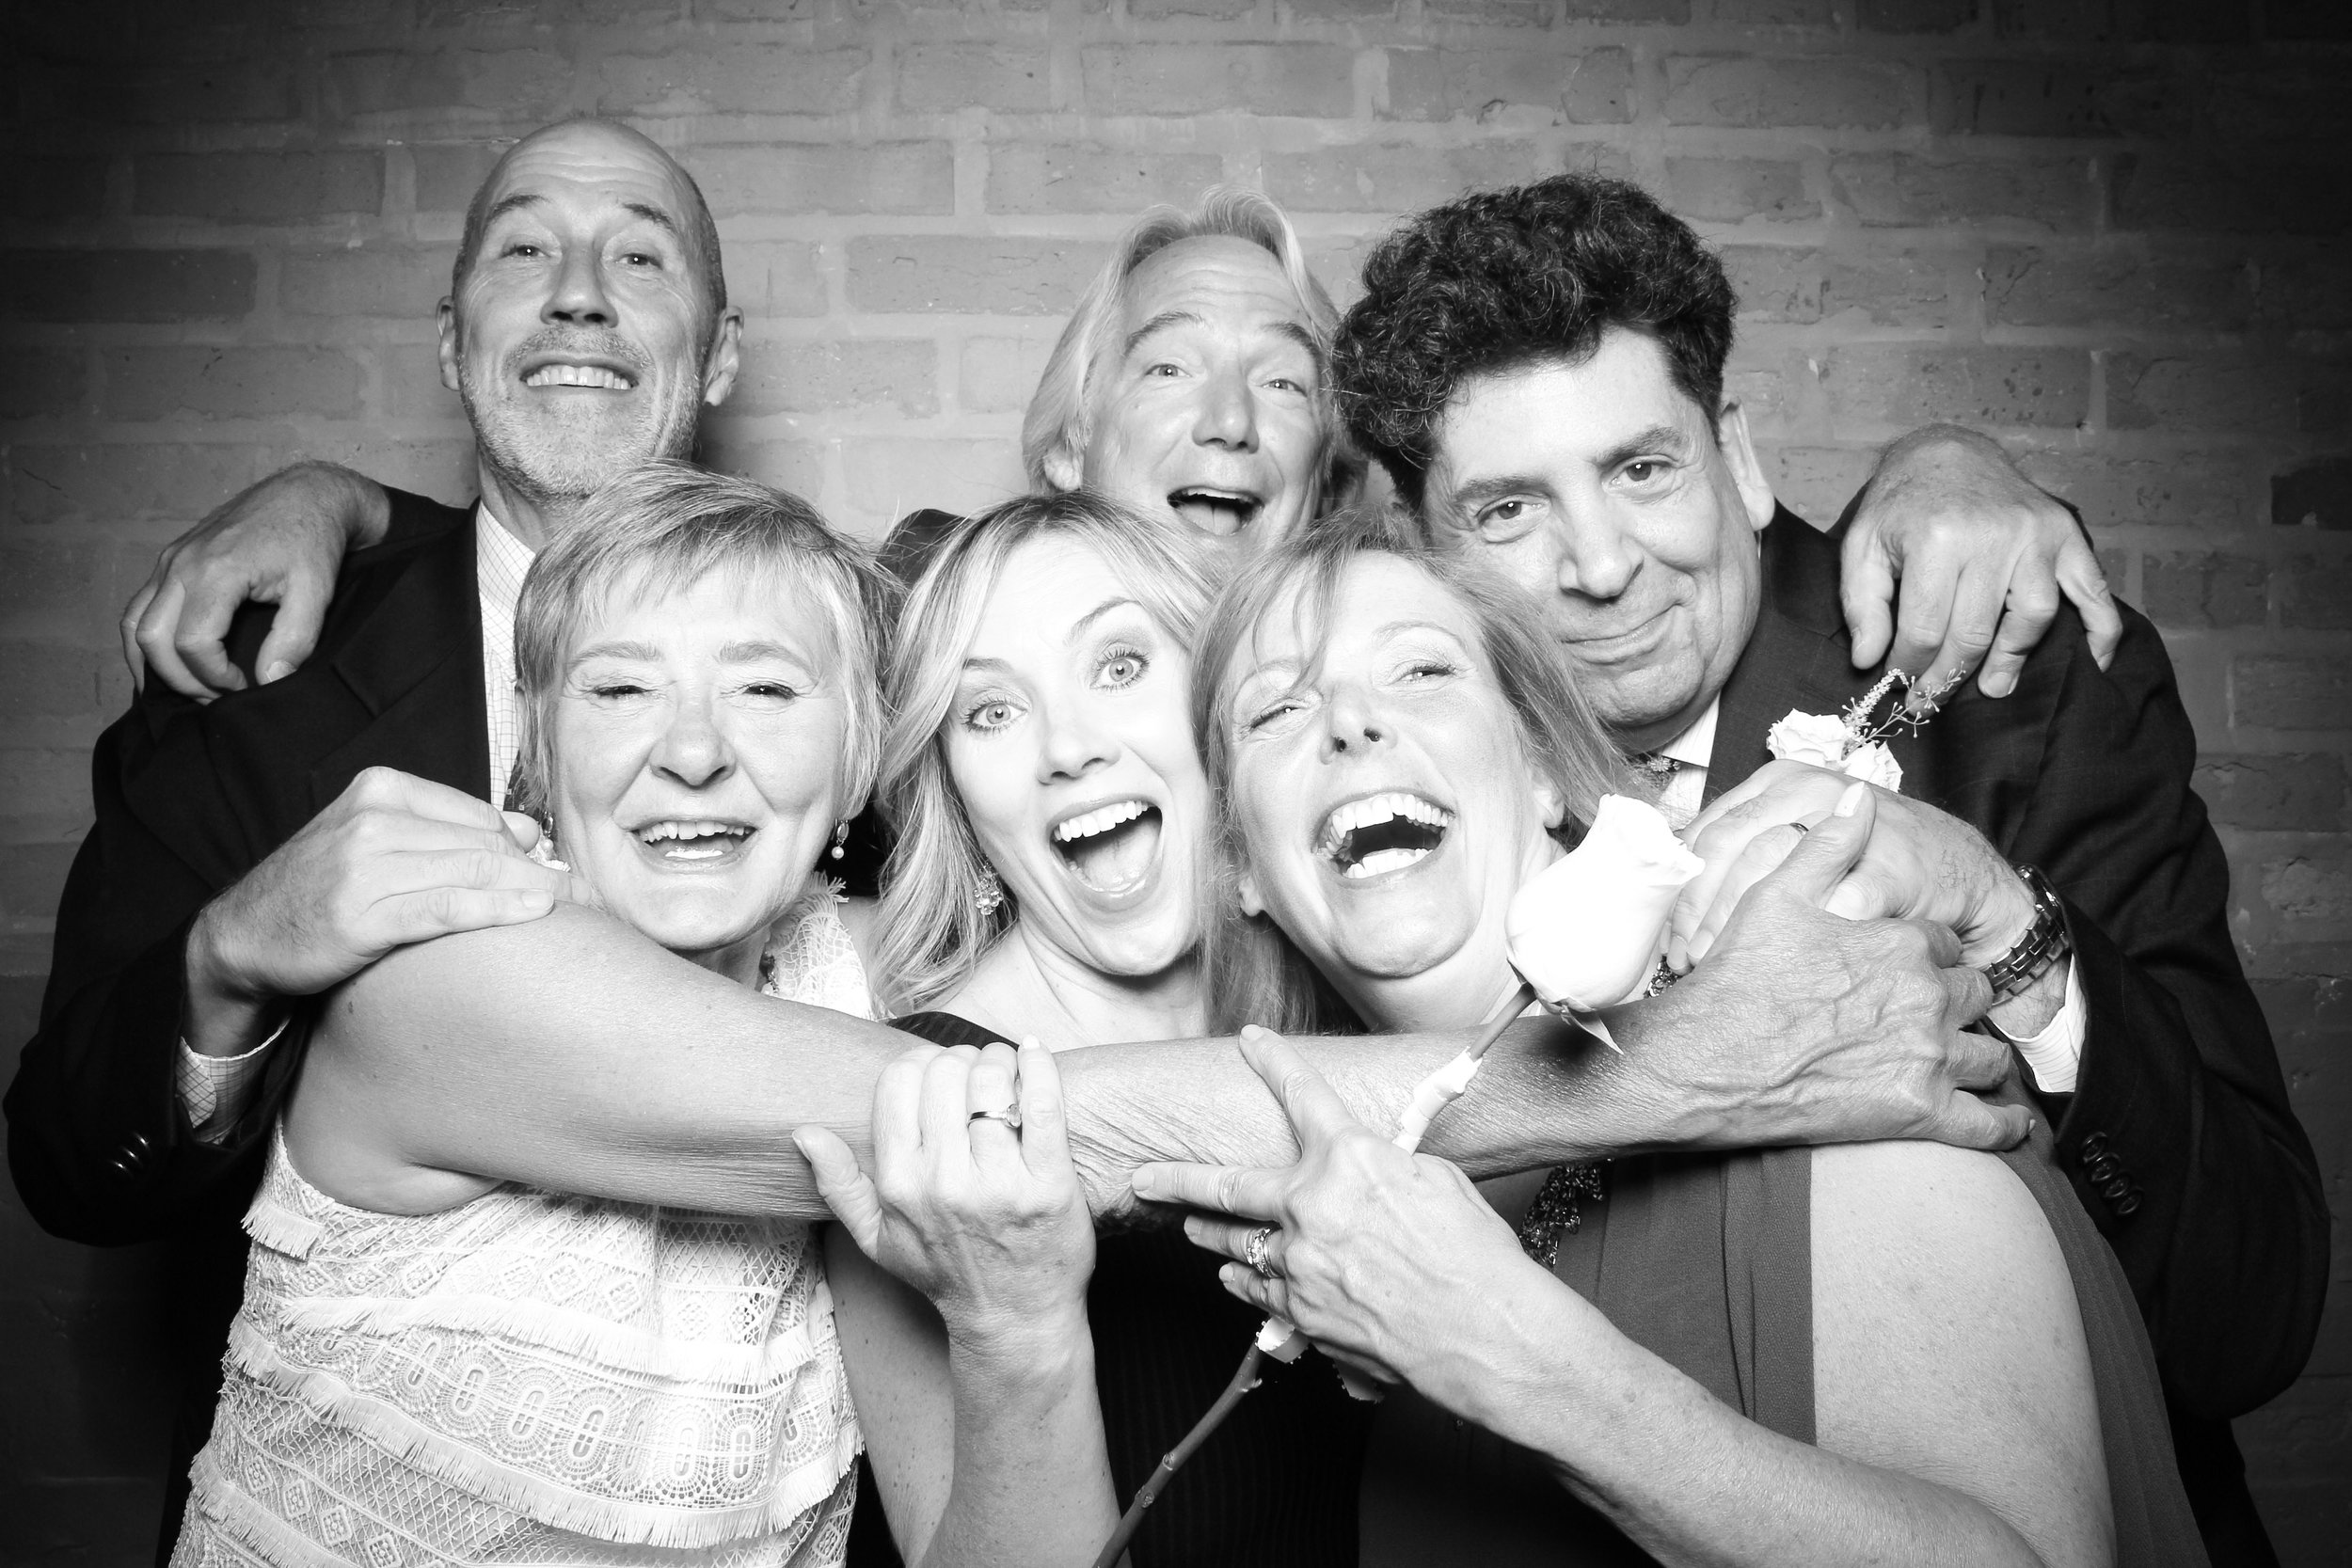 Chicago_Vintage_Wedding_Photobooth_Fairlie_06.jpg